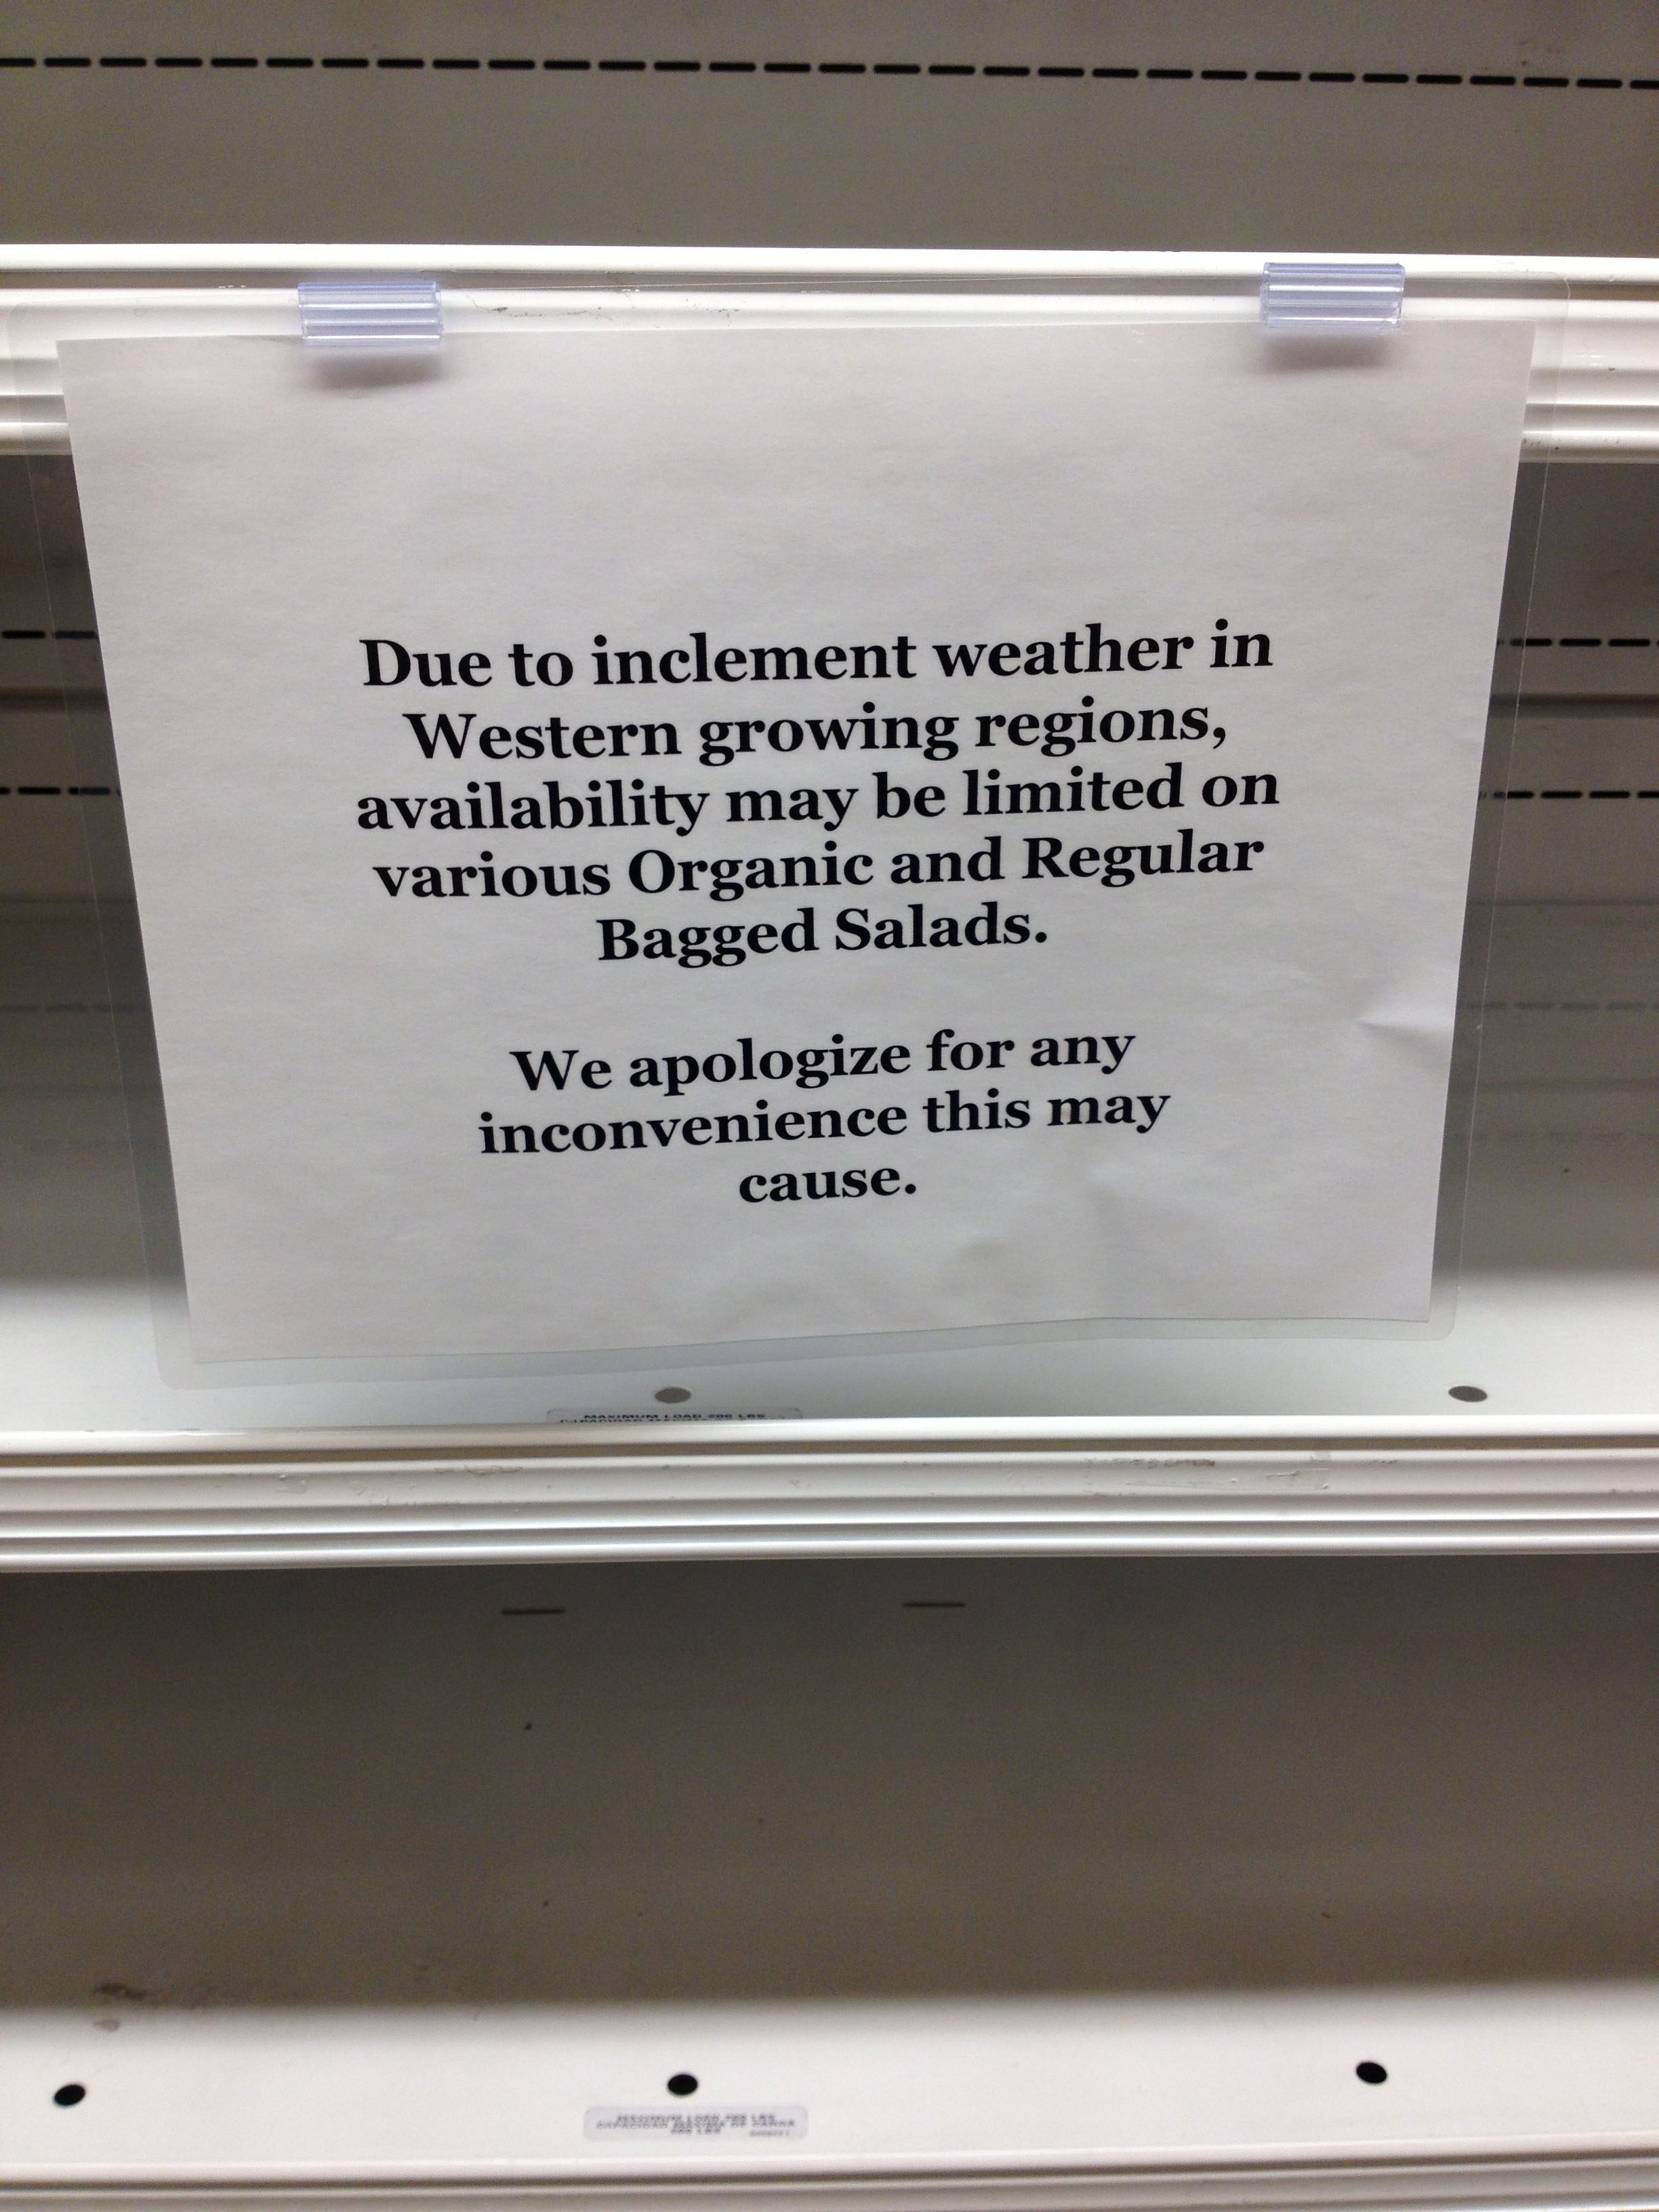 On Thursday, salads were of limited quantity at Stop & Shop. Photo by Chelsea Hirsch.